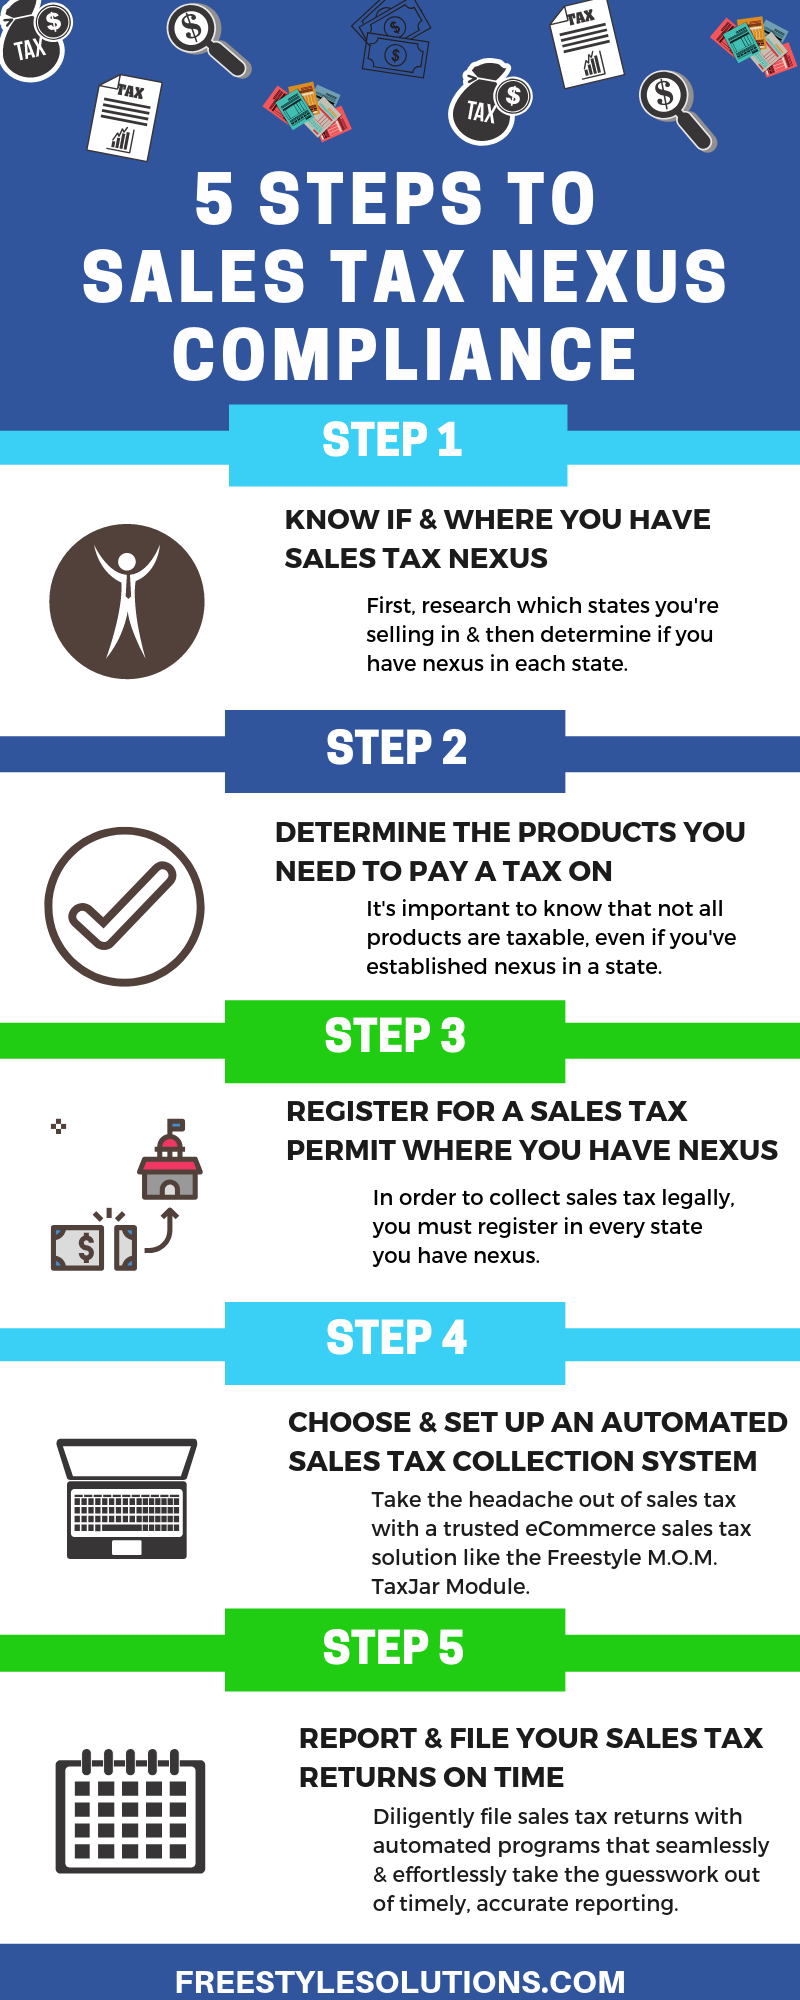 infographic on sales tax nexus compliance